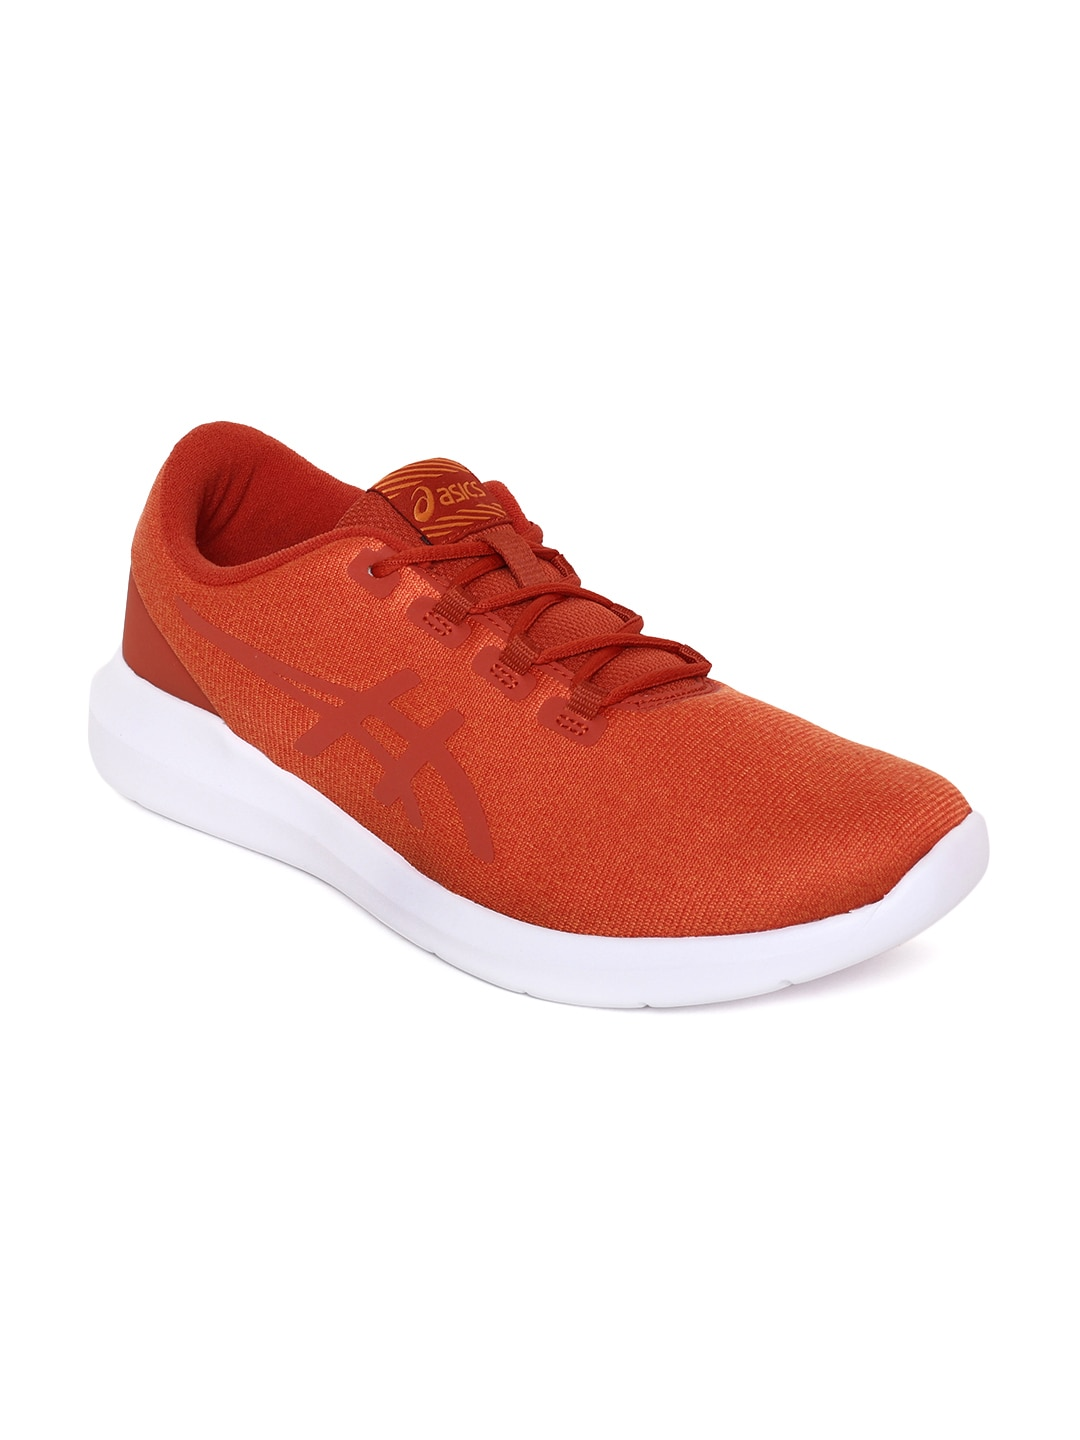 04b9a49e19d4 Asics Sports Shoes - Buy Asics Sports Shoes Online in India